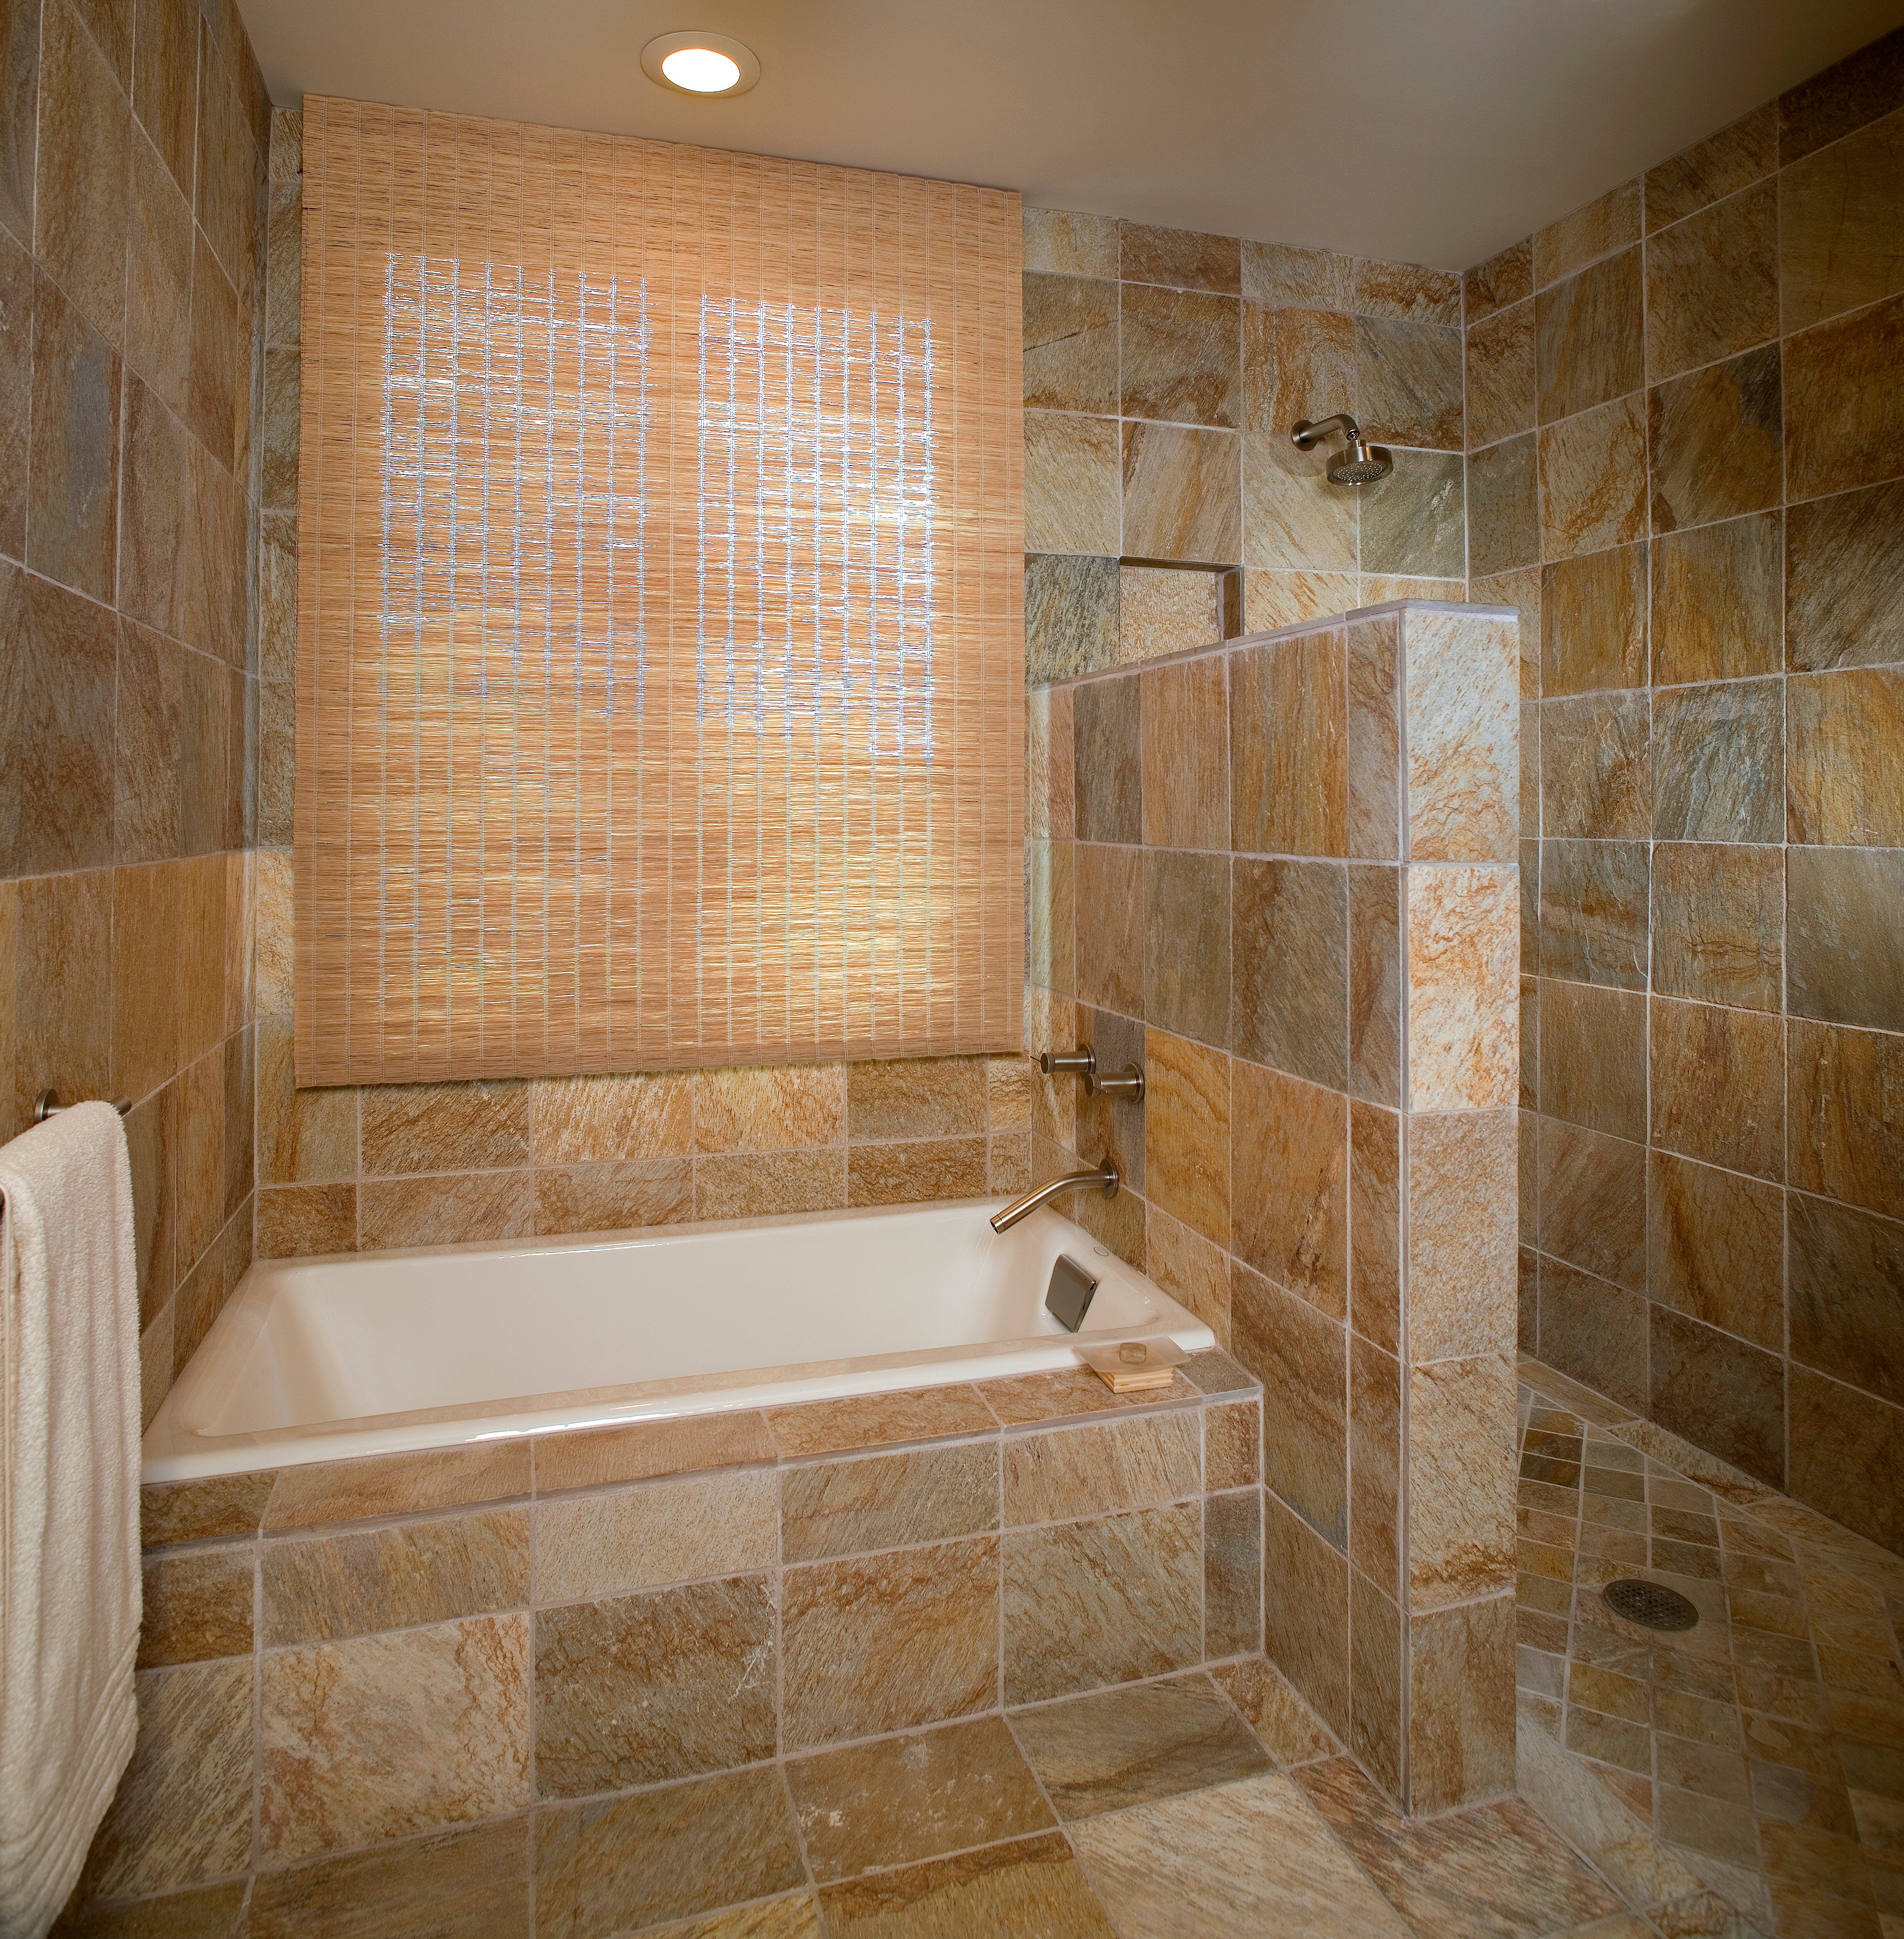 Where Does Your Money Go For A Bathroom Remodel HomeAdvisor - Bathroom contractors pittsburgh pa